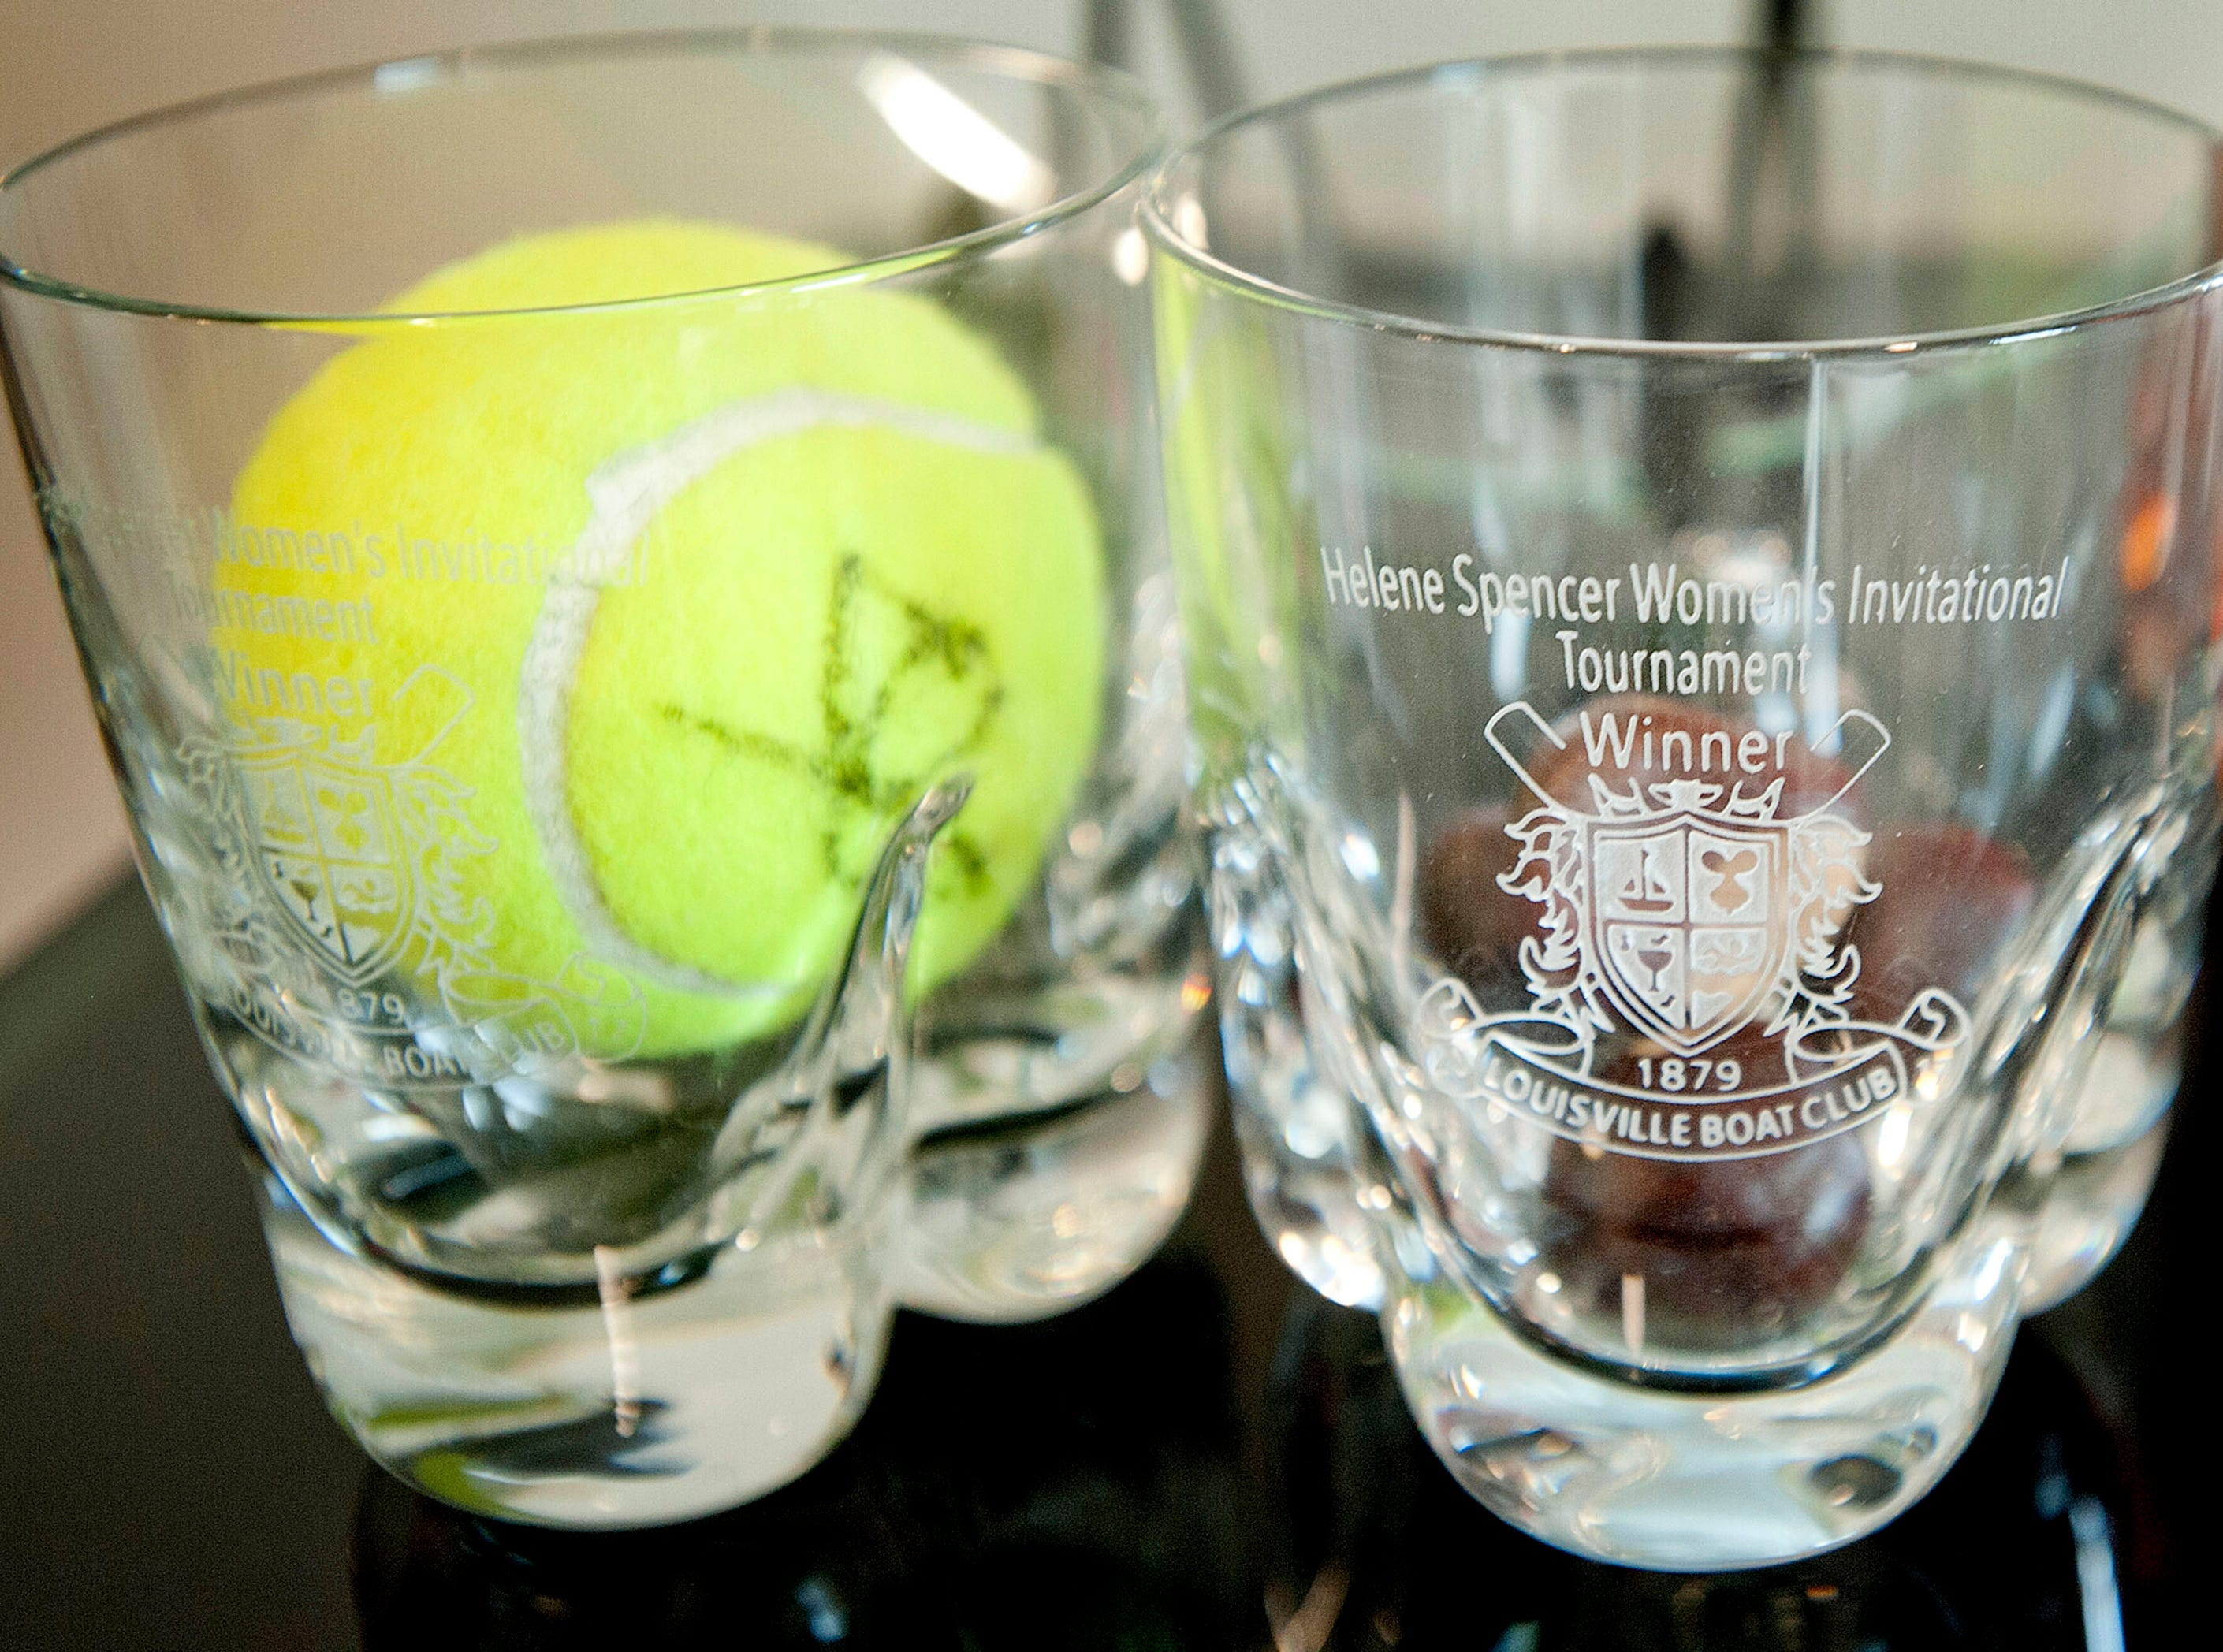 Puthuff and her sister are avid tennis players often teaming up in doubles tournaments. Among the trophies in the living room is this glass trophy they got for winning the Helene Spencer Invitational Tennis Tournament doubles championship sponsored by the Louisville Boat Club  19 February 2019